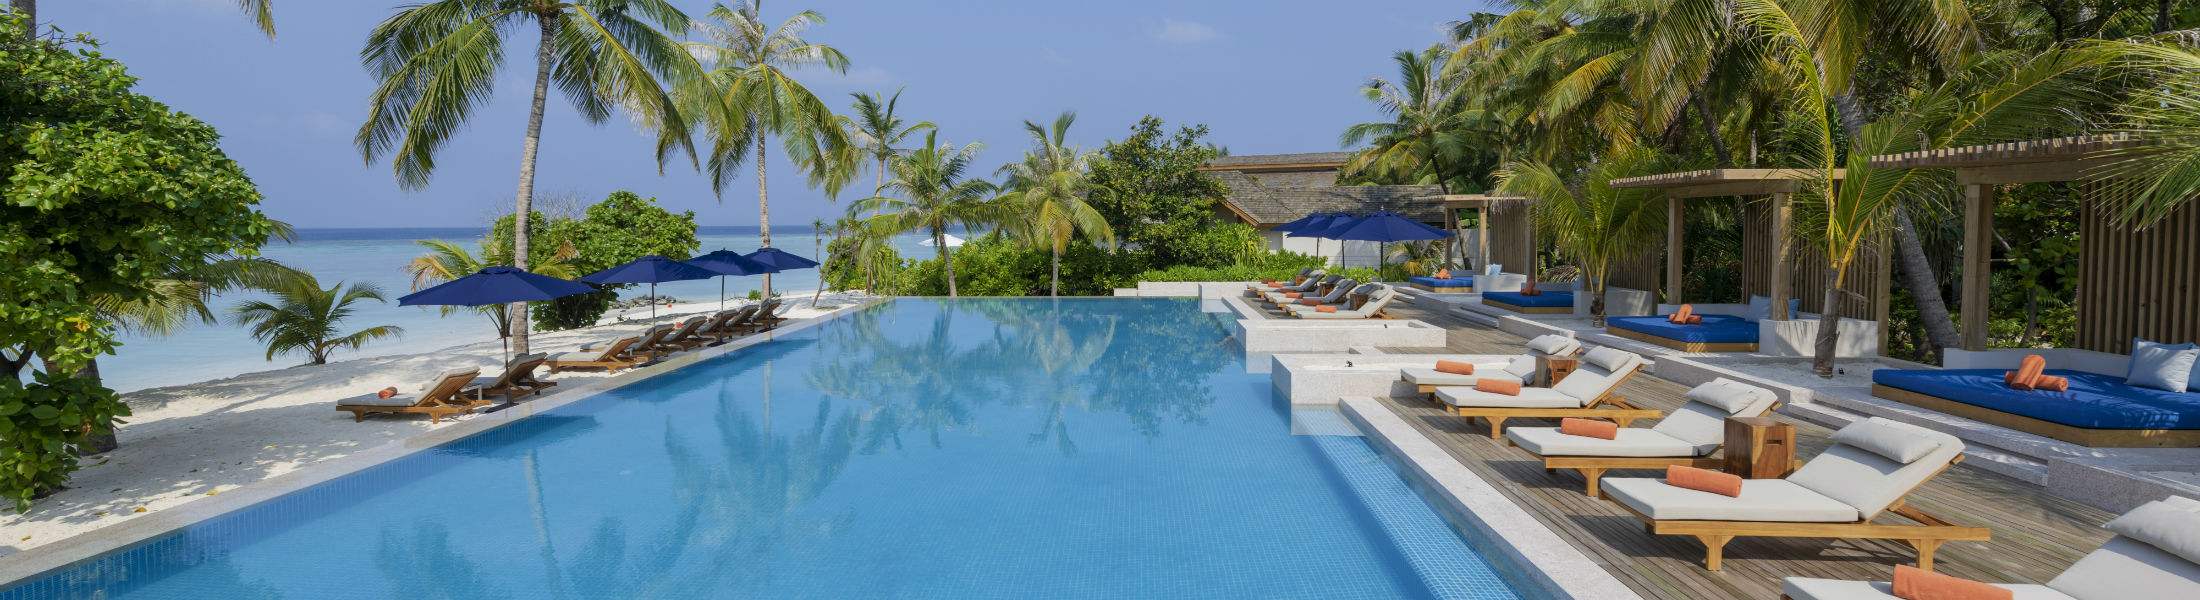 Pool area at the Faarufushi Maldives